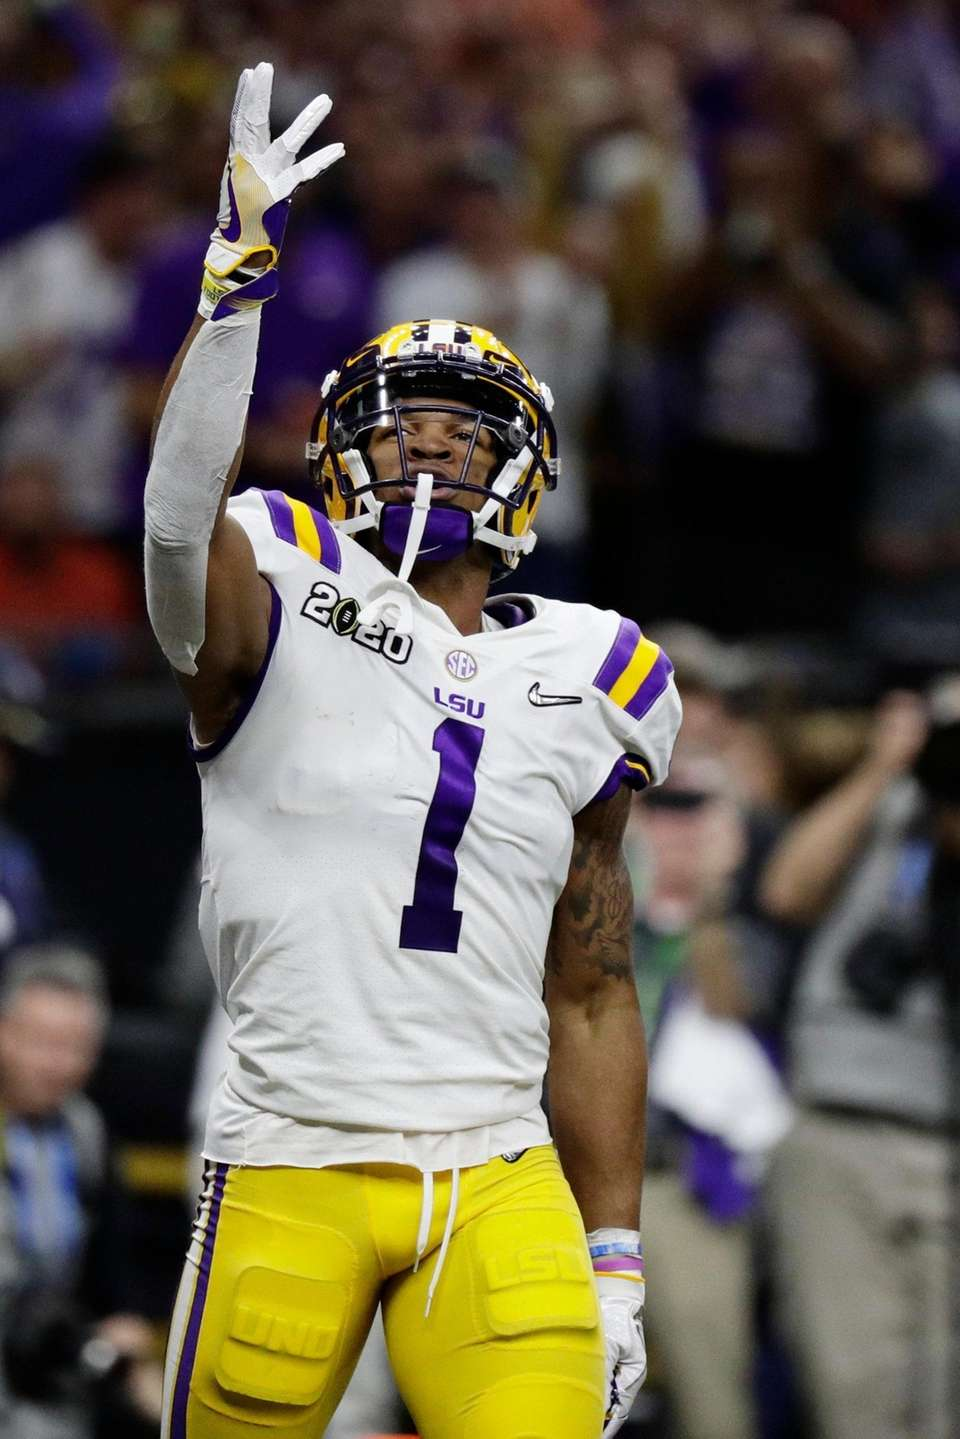 LSU wide receiver Ja'Marr Chase celebrates after scoring